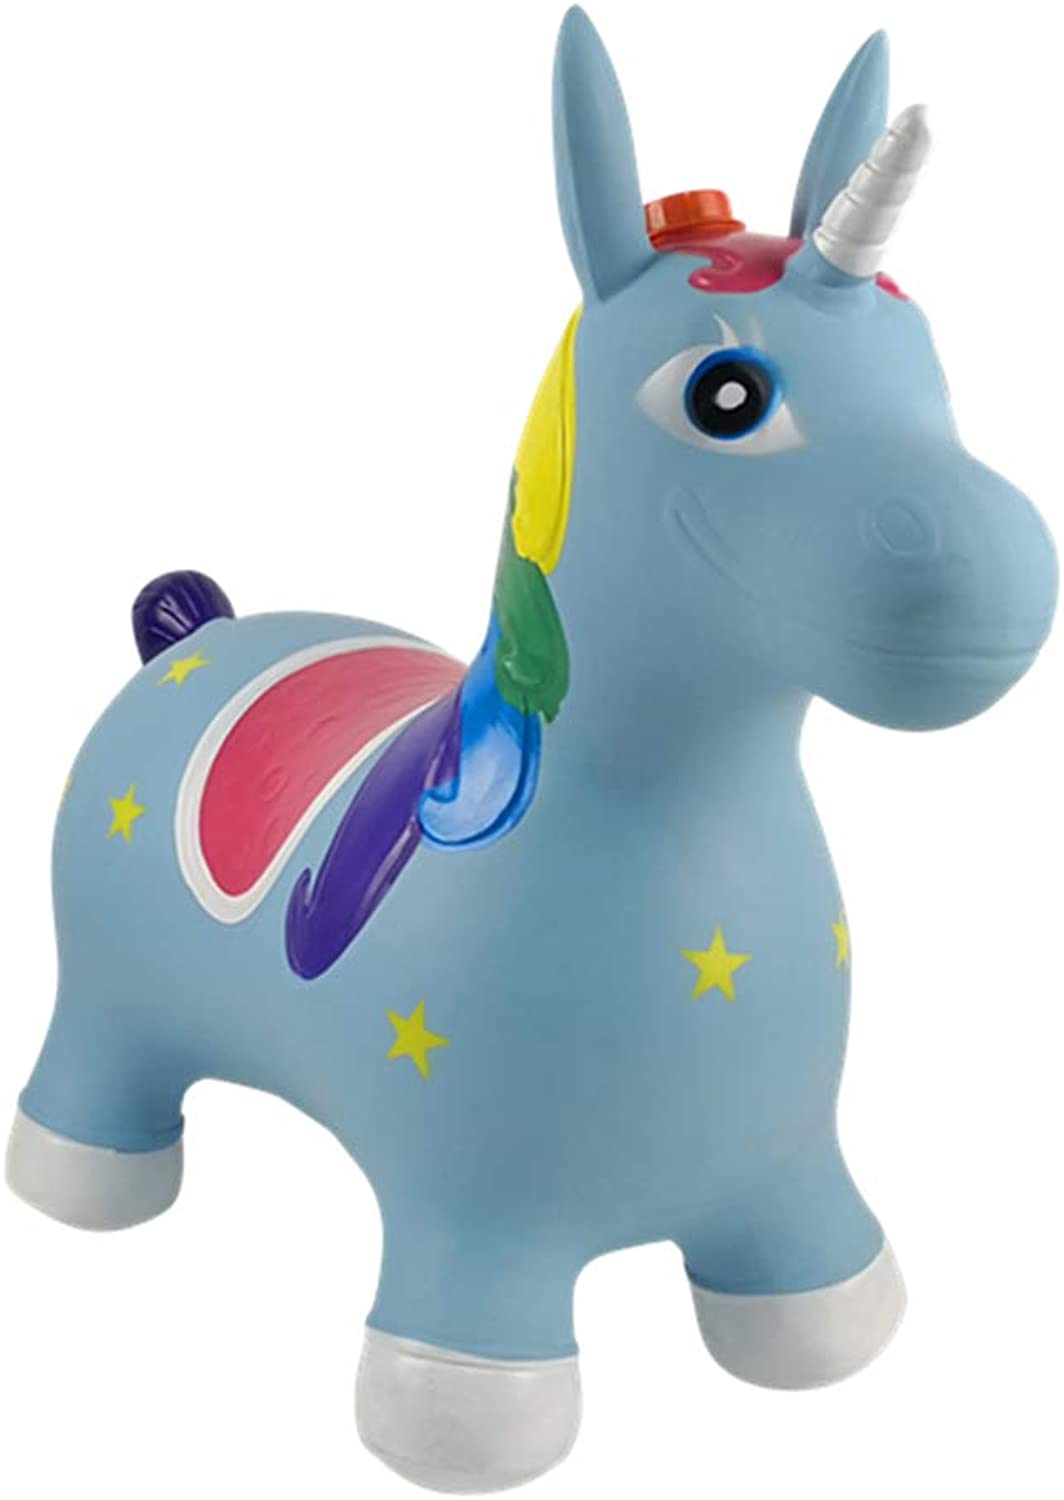 Mr.LQ Inflatable Horse Hopper Rocking Horse bluee Bouncer with Hand Pump Inflatable Space Hopper Ride on Bouncy Animal